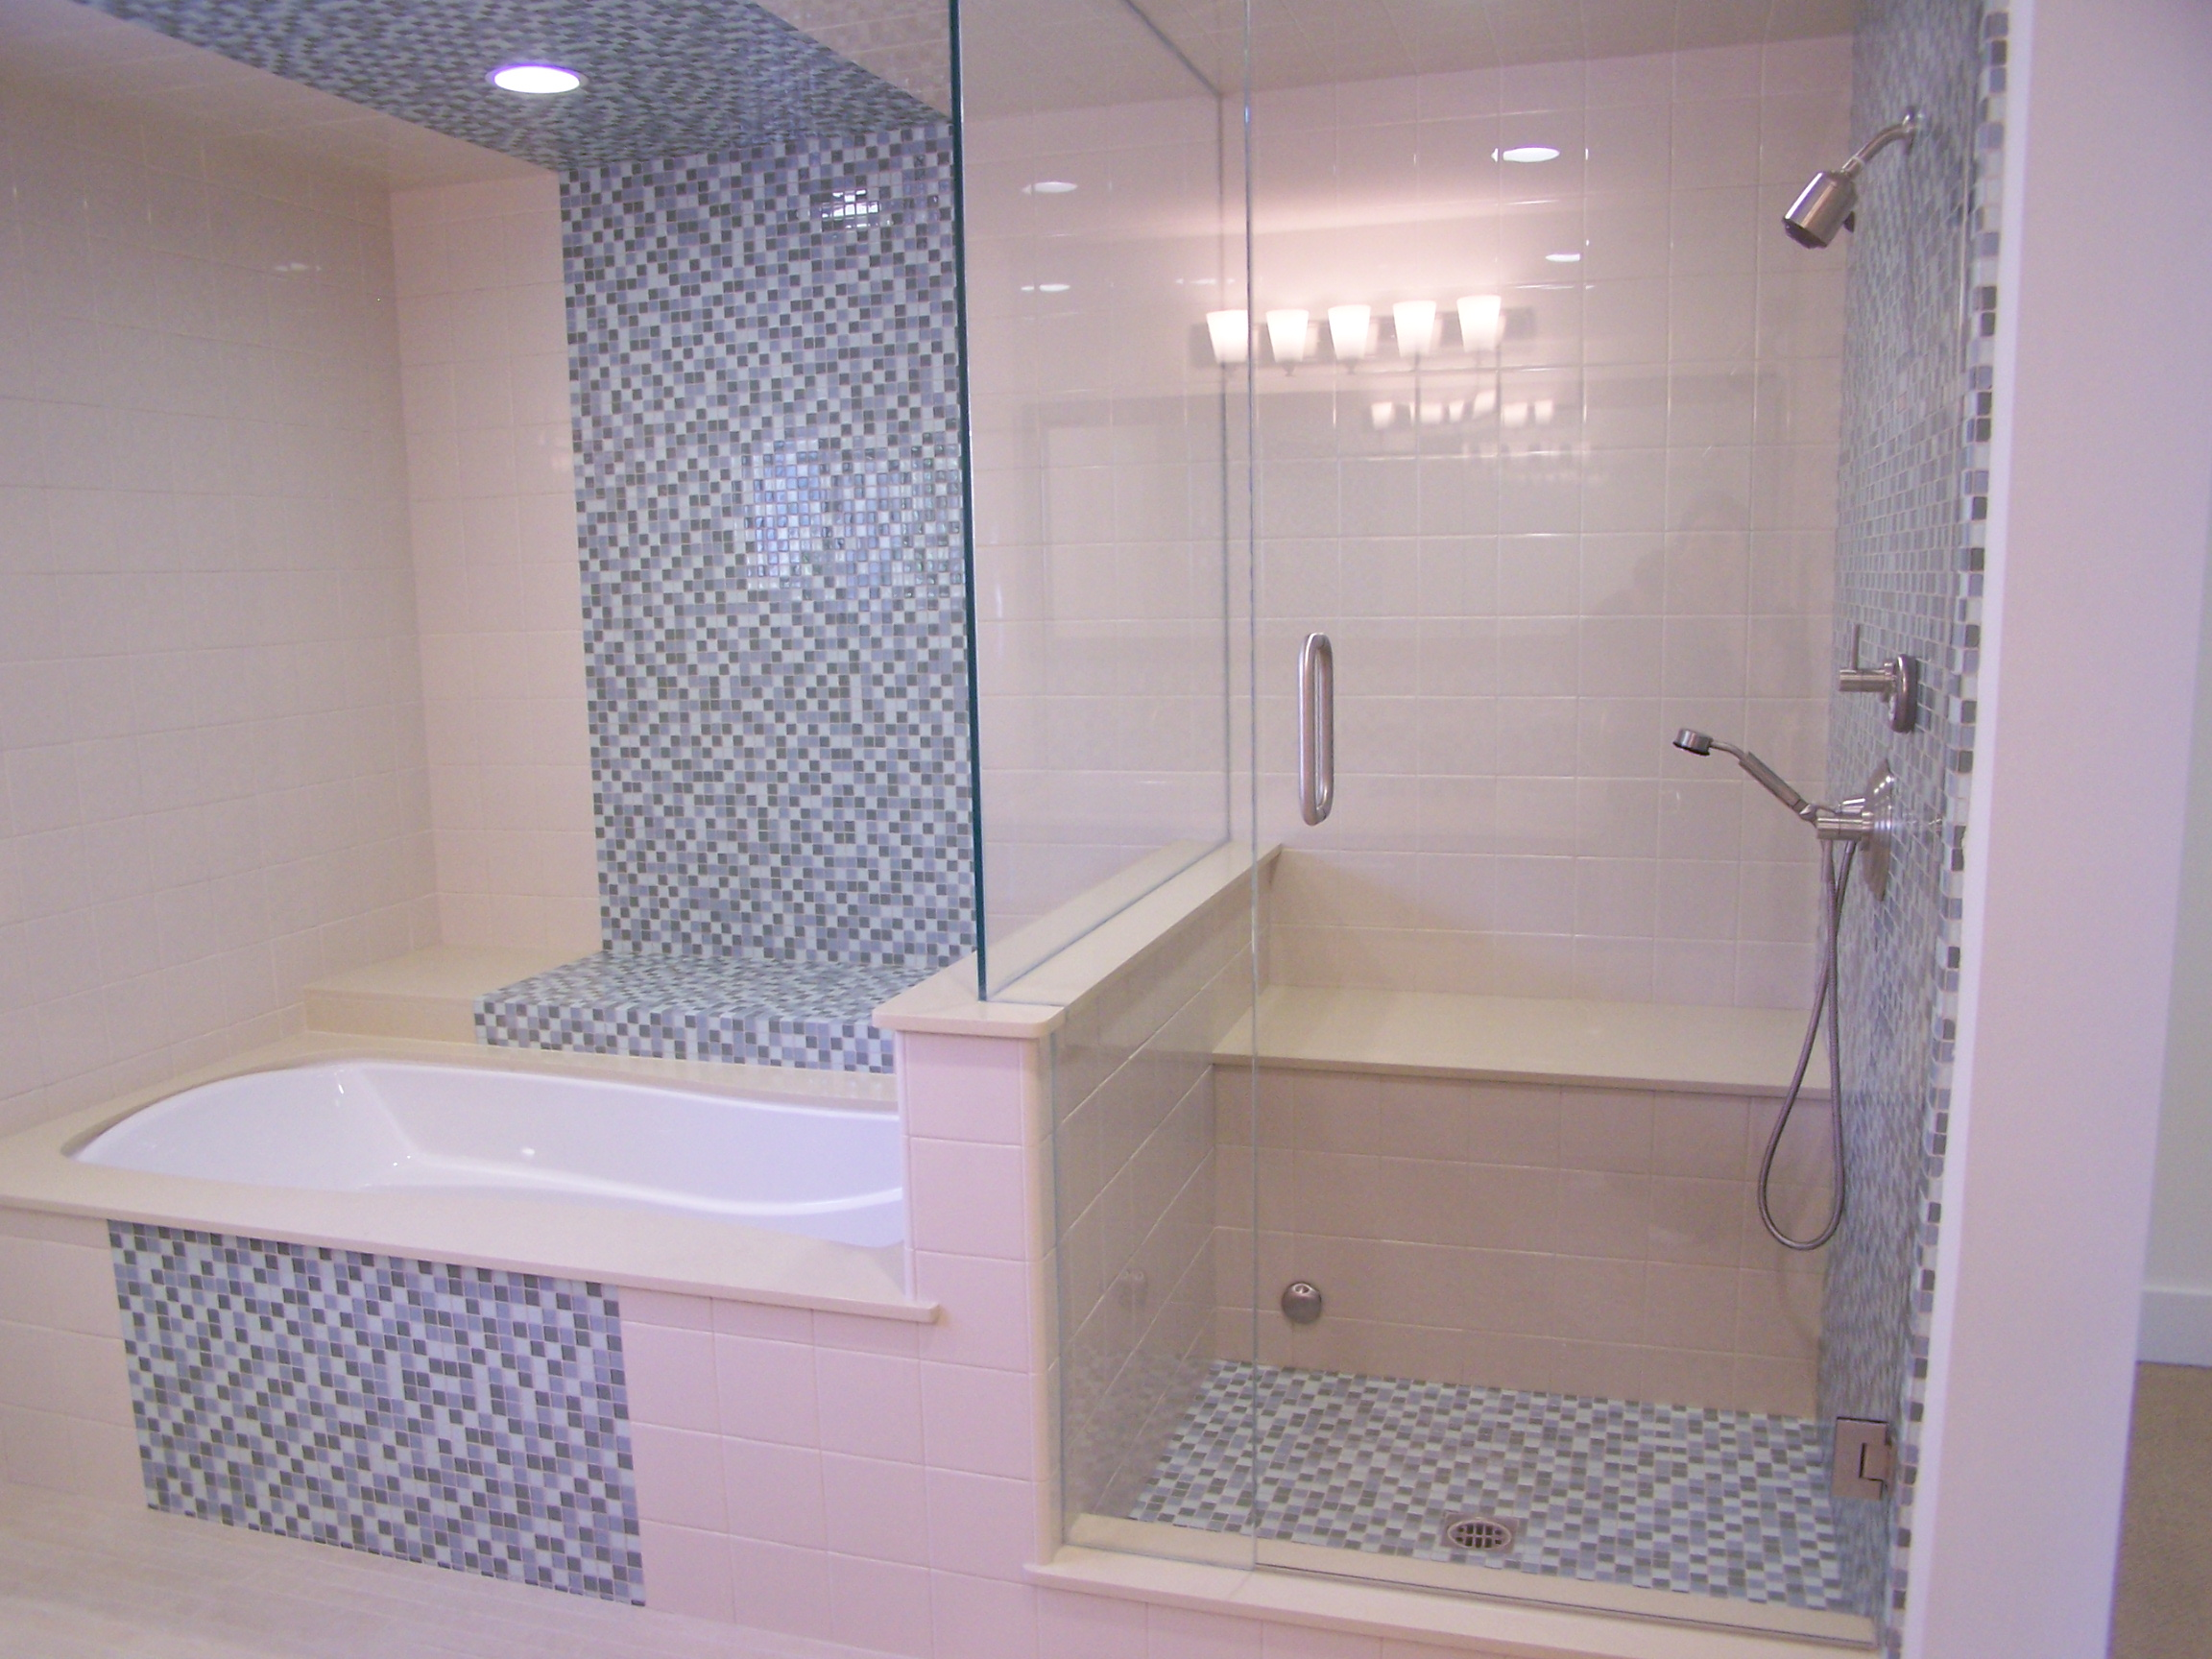 home tile design ideas. Cute pink bathroom wall tiles design great home  30 magnificent ideas and pictures of 1950s designs